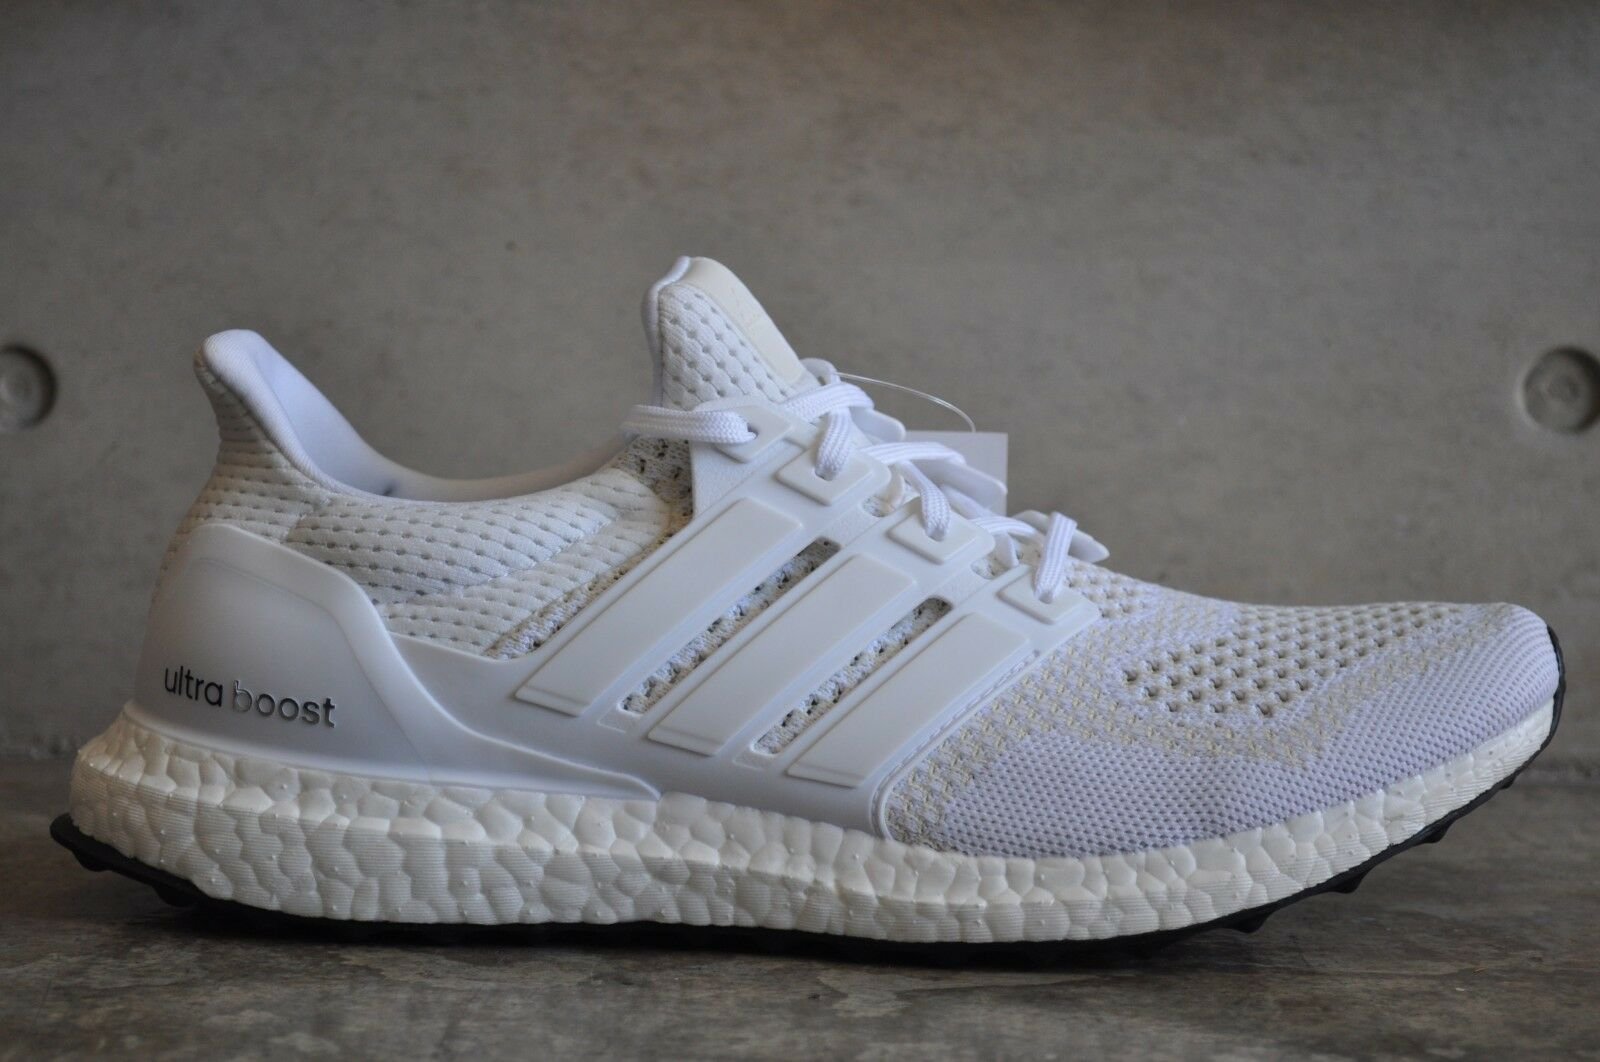 374101f0ac52d adidas Ultra Boost Triple White 1.0 S77416 7 UK 40 2 3 EUR 7.5 US ...